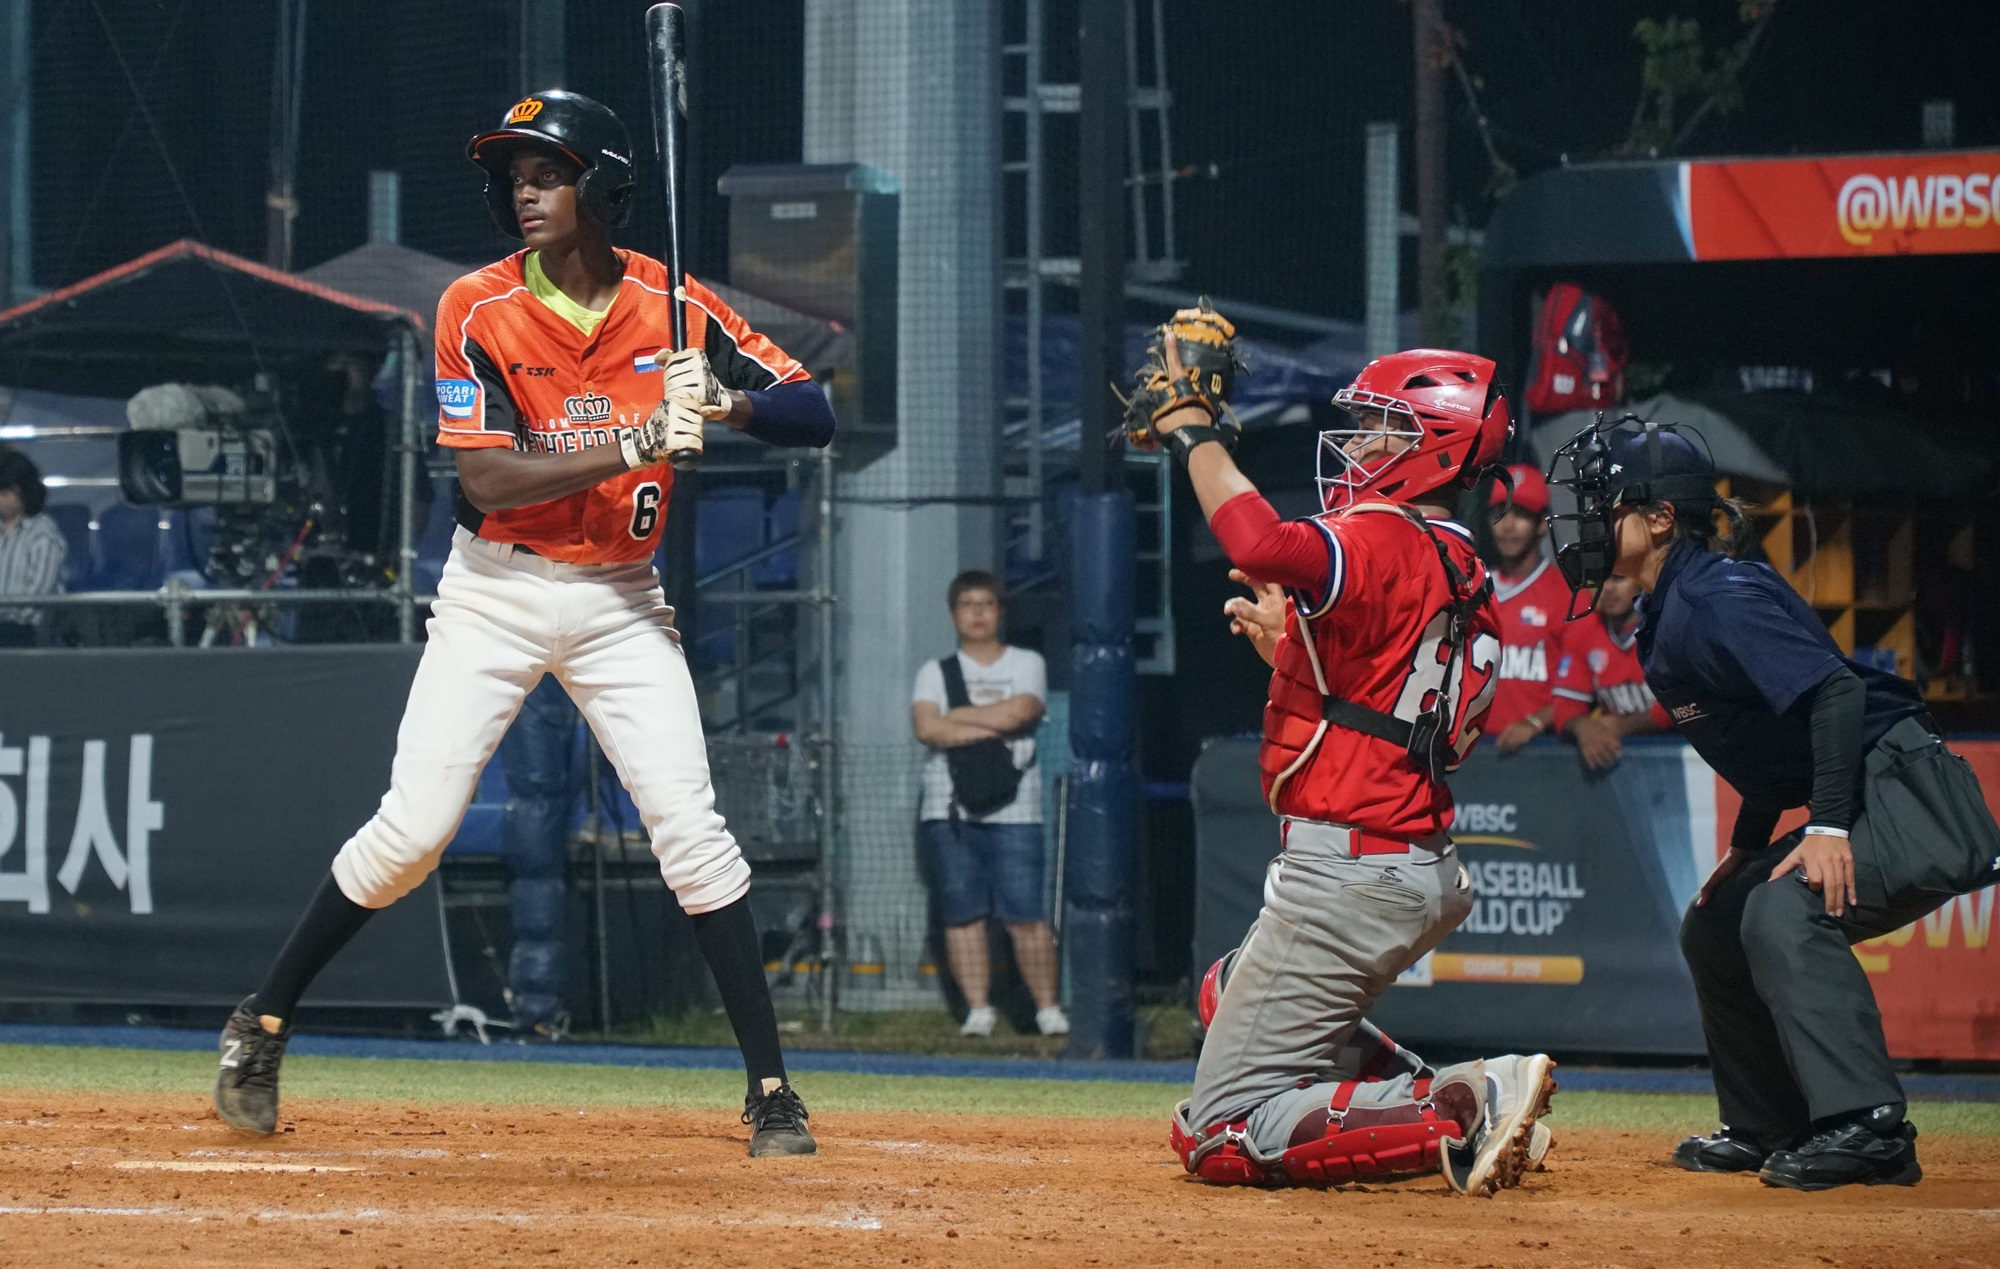 The Netherlands came from behind to win it on a solo home run